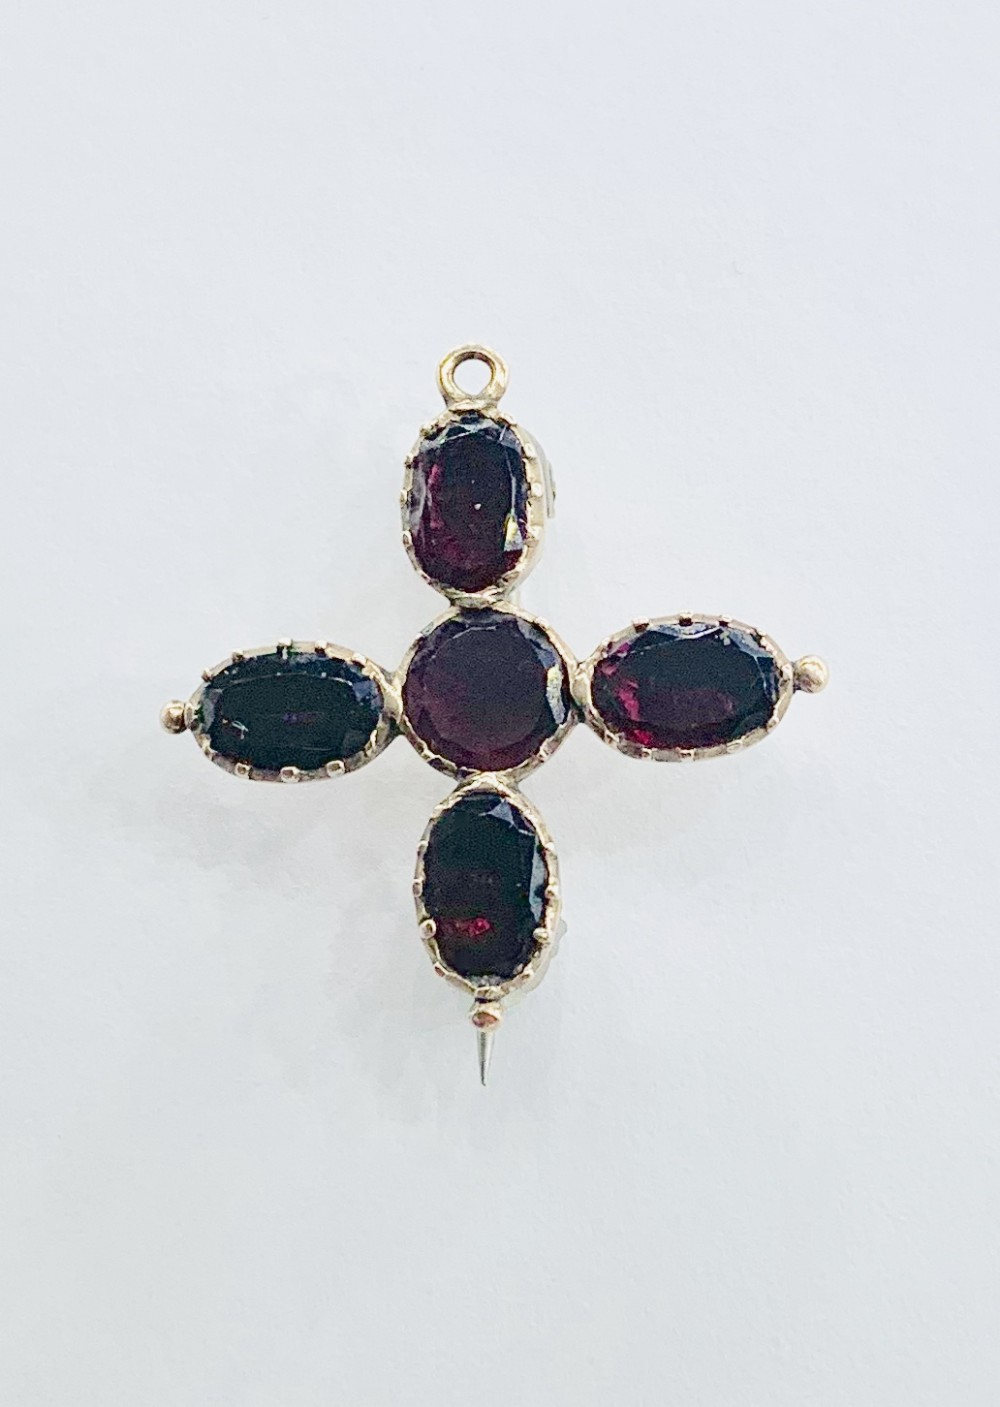 late georgian gold and garnet combined pendant and brooch c1820